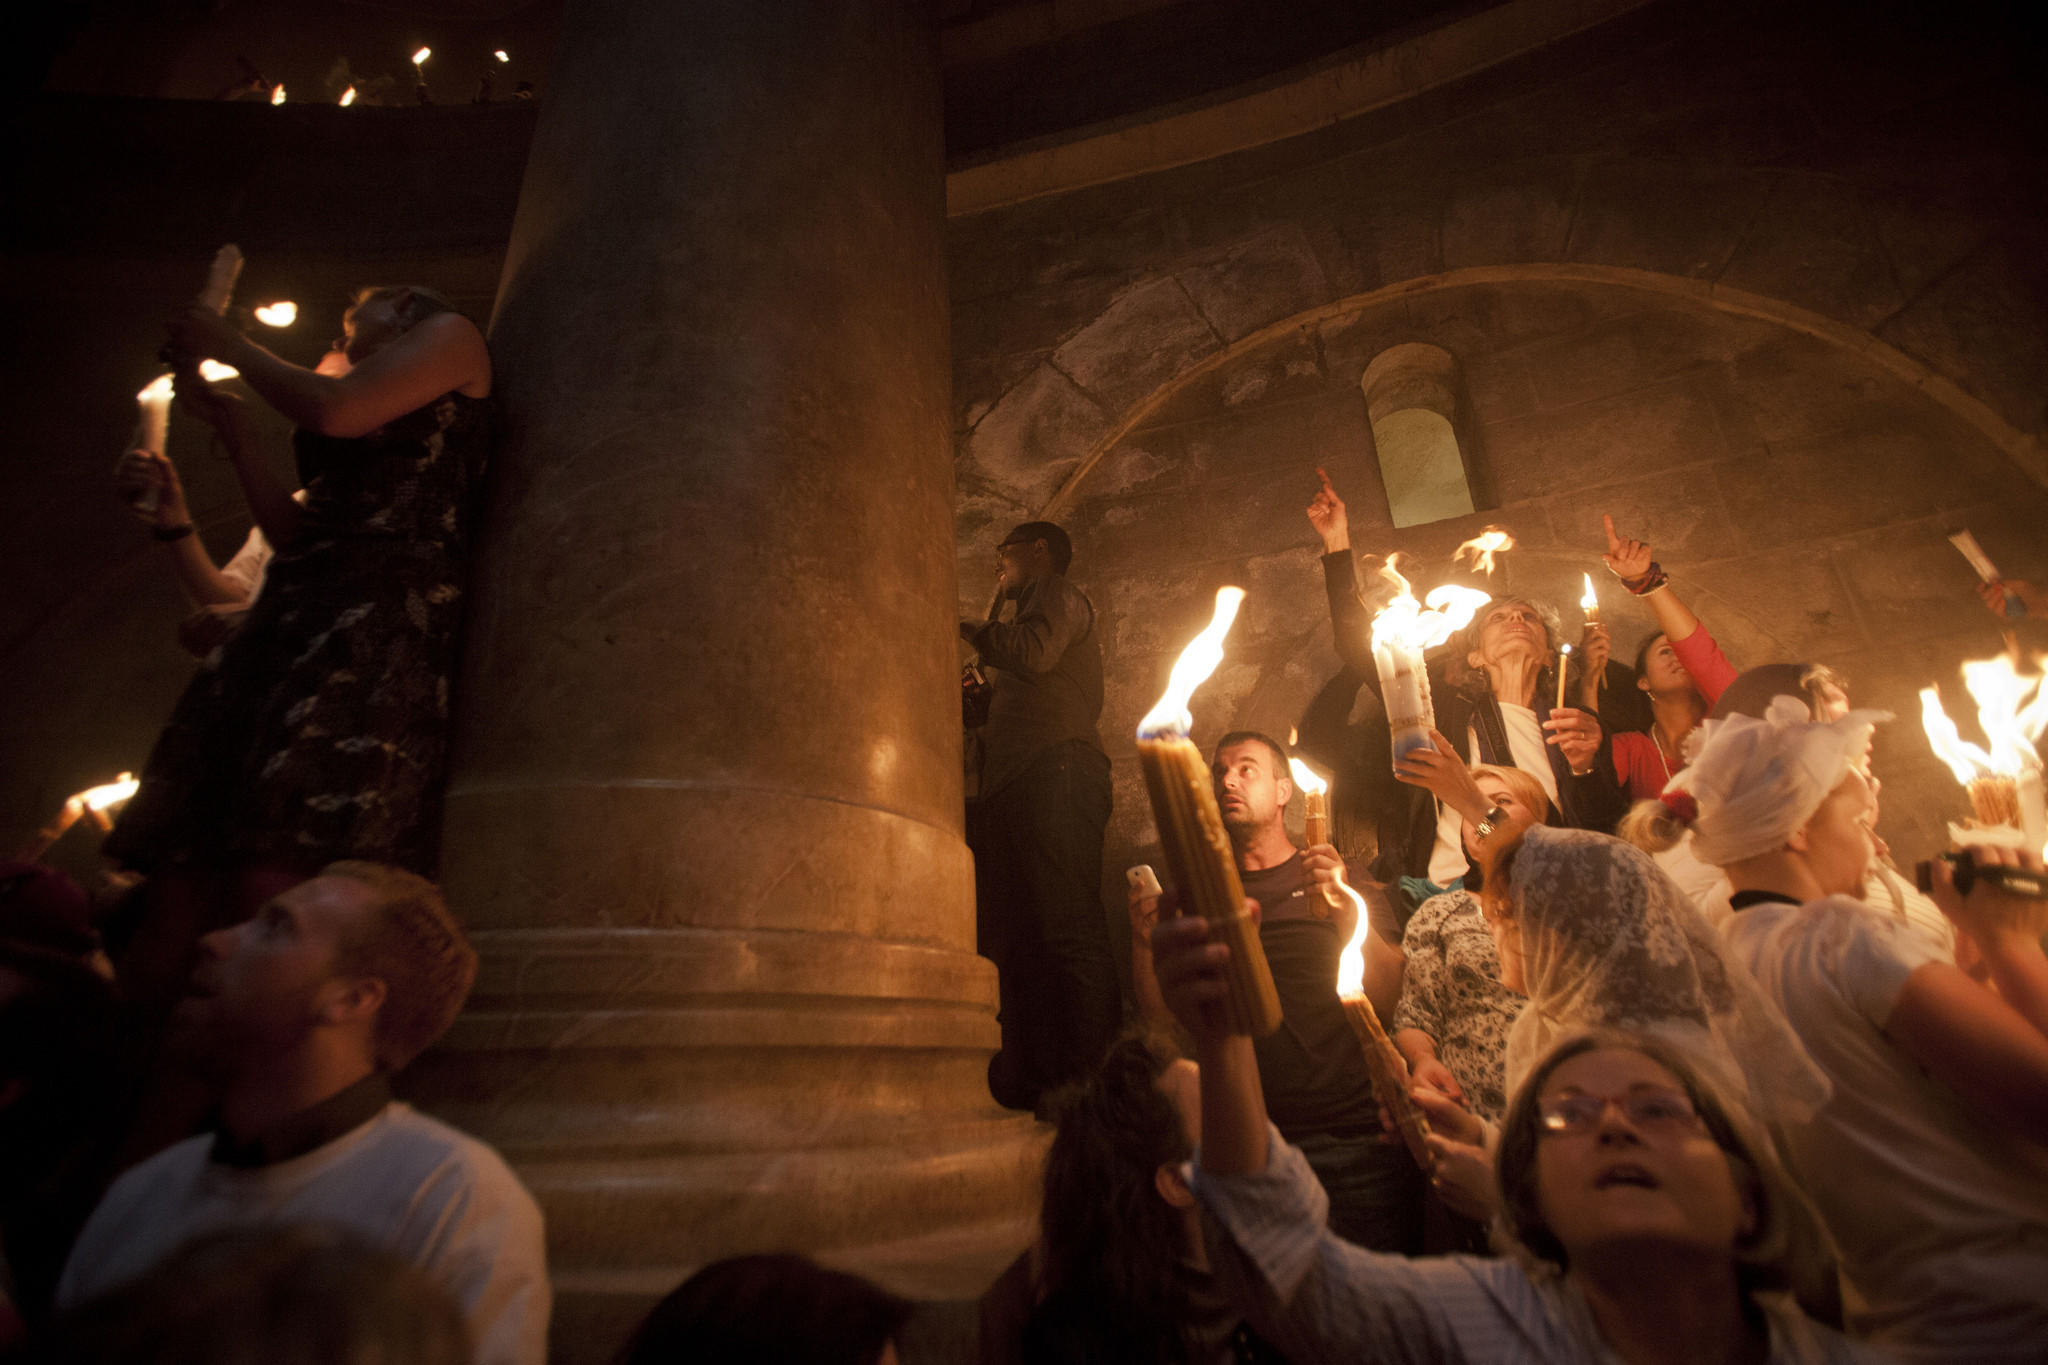 """Christian pilgrims hold candles at the Church of the Holy Sepulcher, believed to be the burial site of Jesus Christ, during the ceremony of the """"holy fire"""" in Jerusalem's Old City on Saturday."""